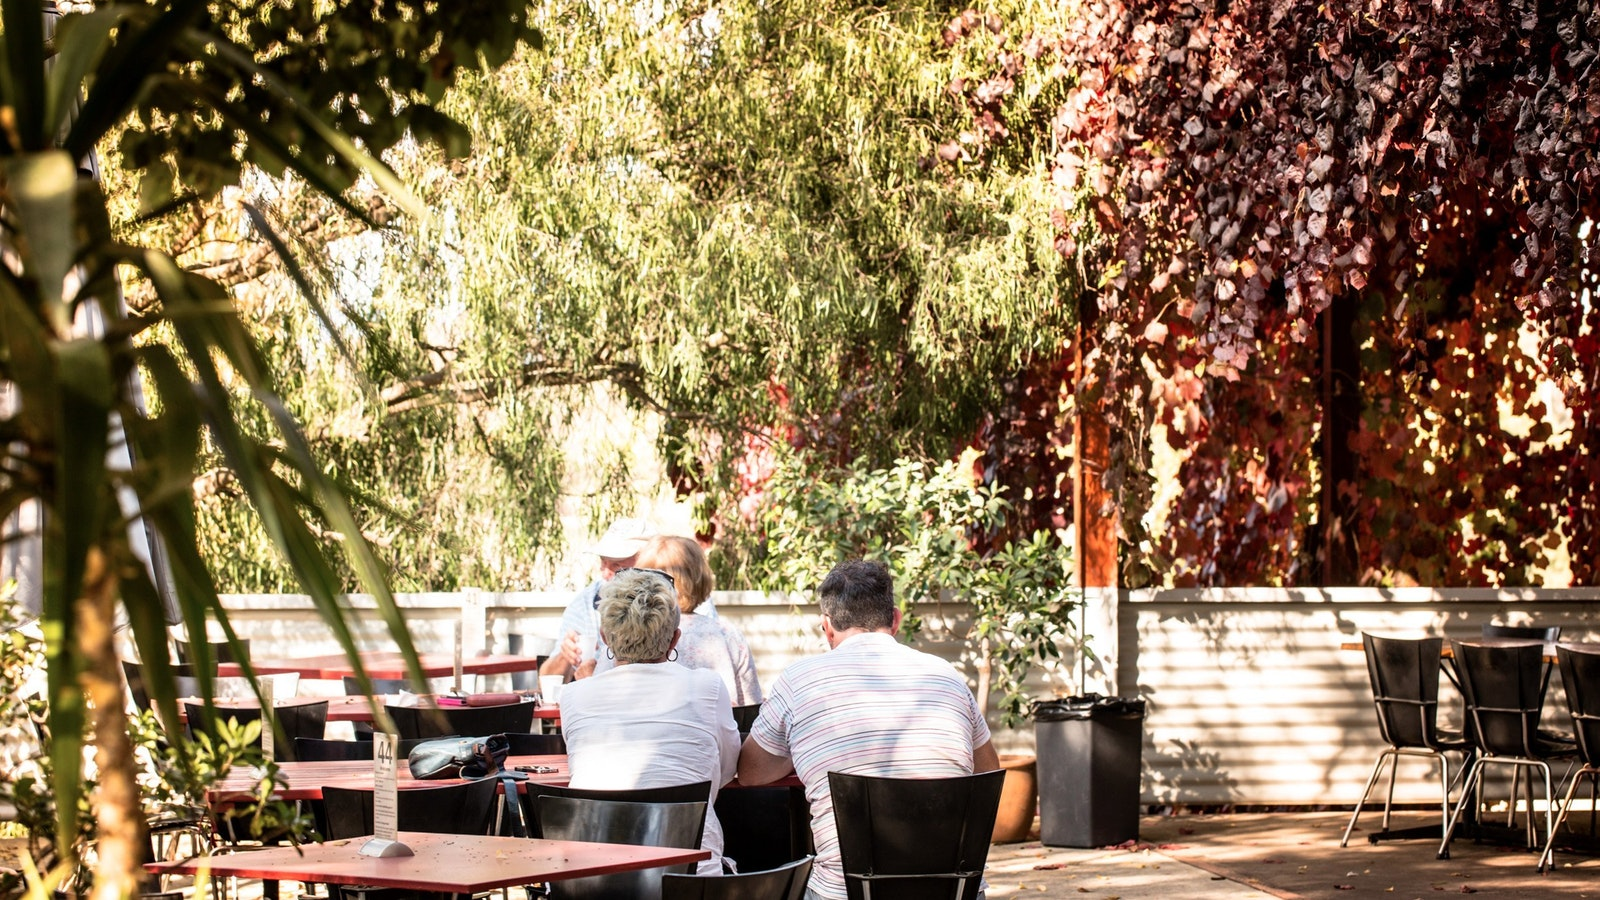 Dine among the vines on the Milawa Cheese Factory deck